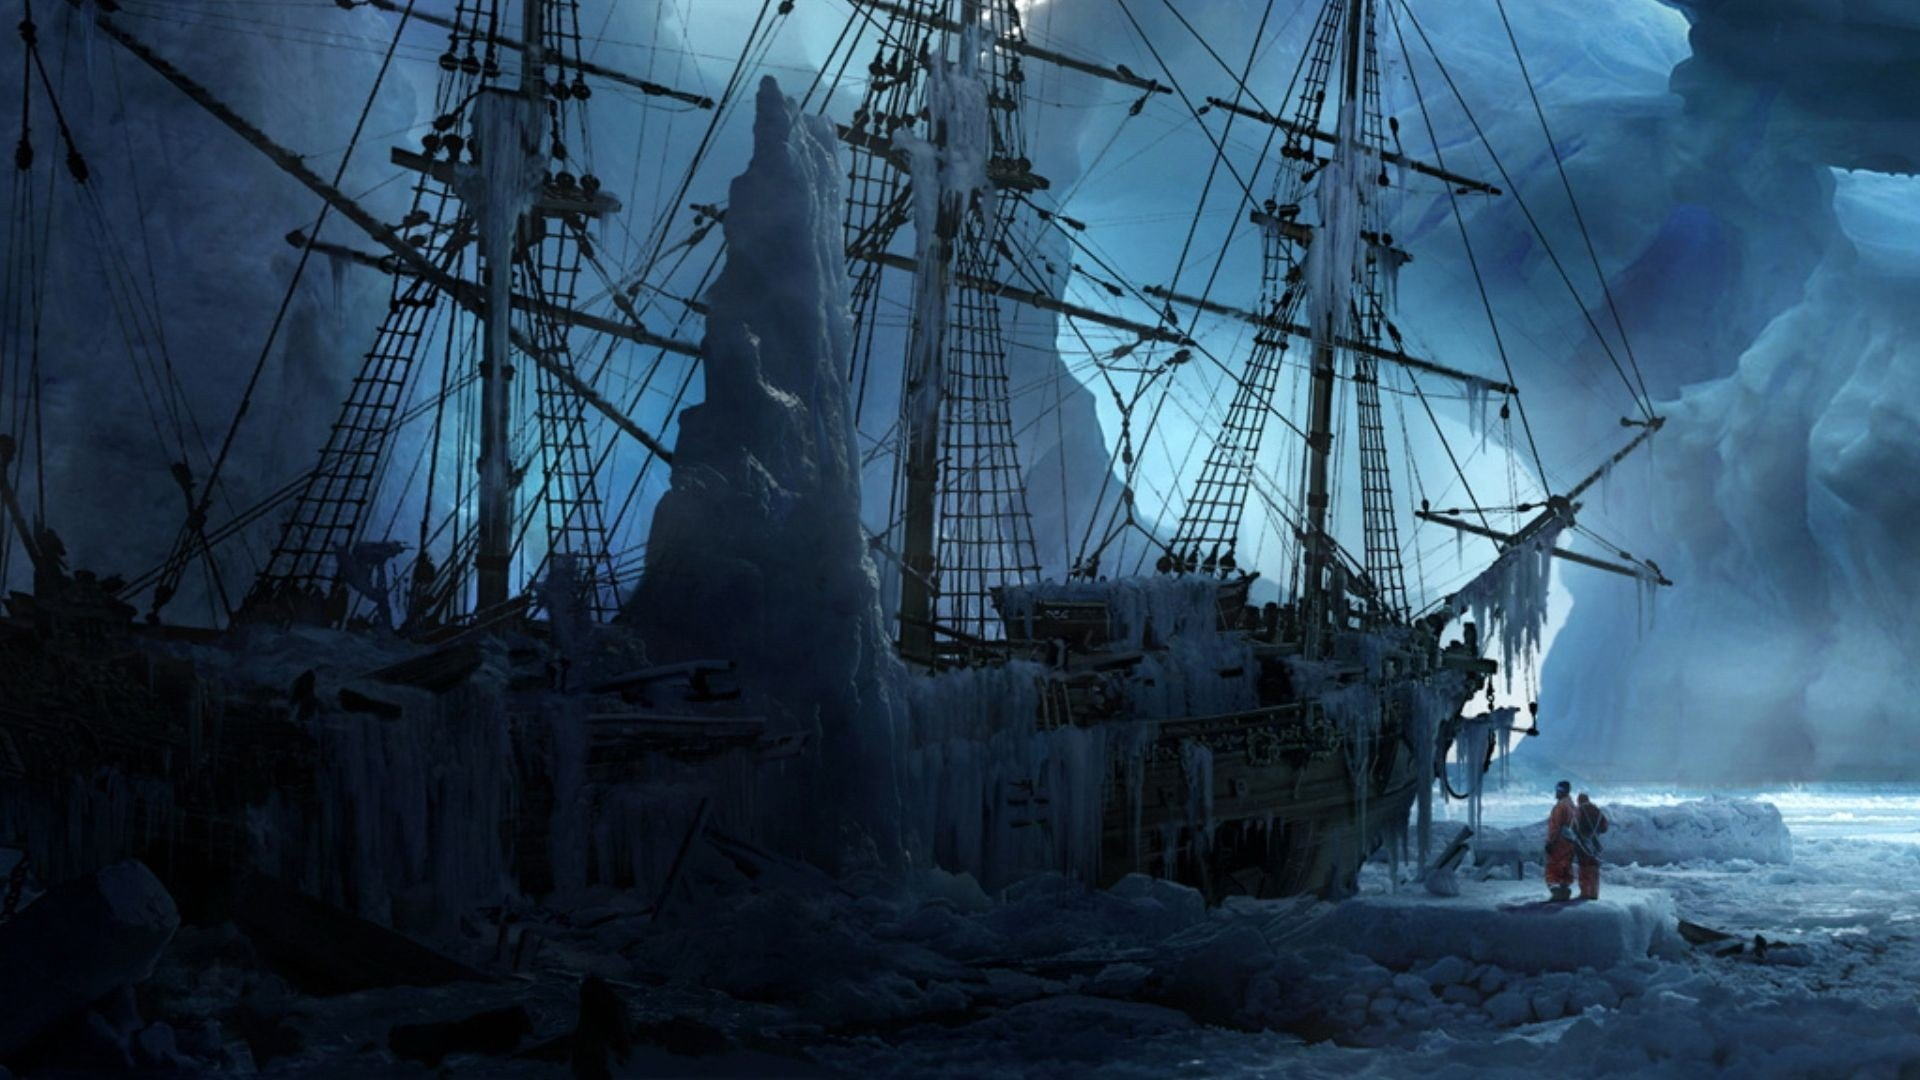 Titanic Ship 3d Wallpaper Free Download Fantasy Ice Artistic Cold Ships Frozen Fantasy Art